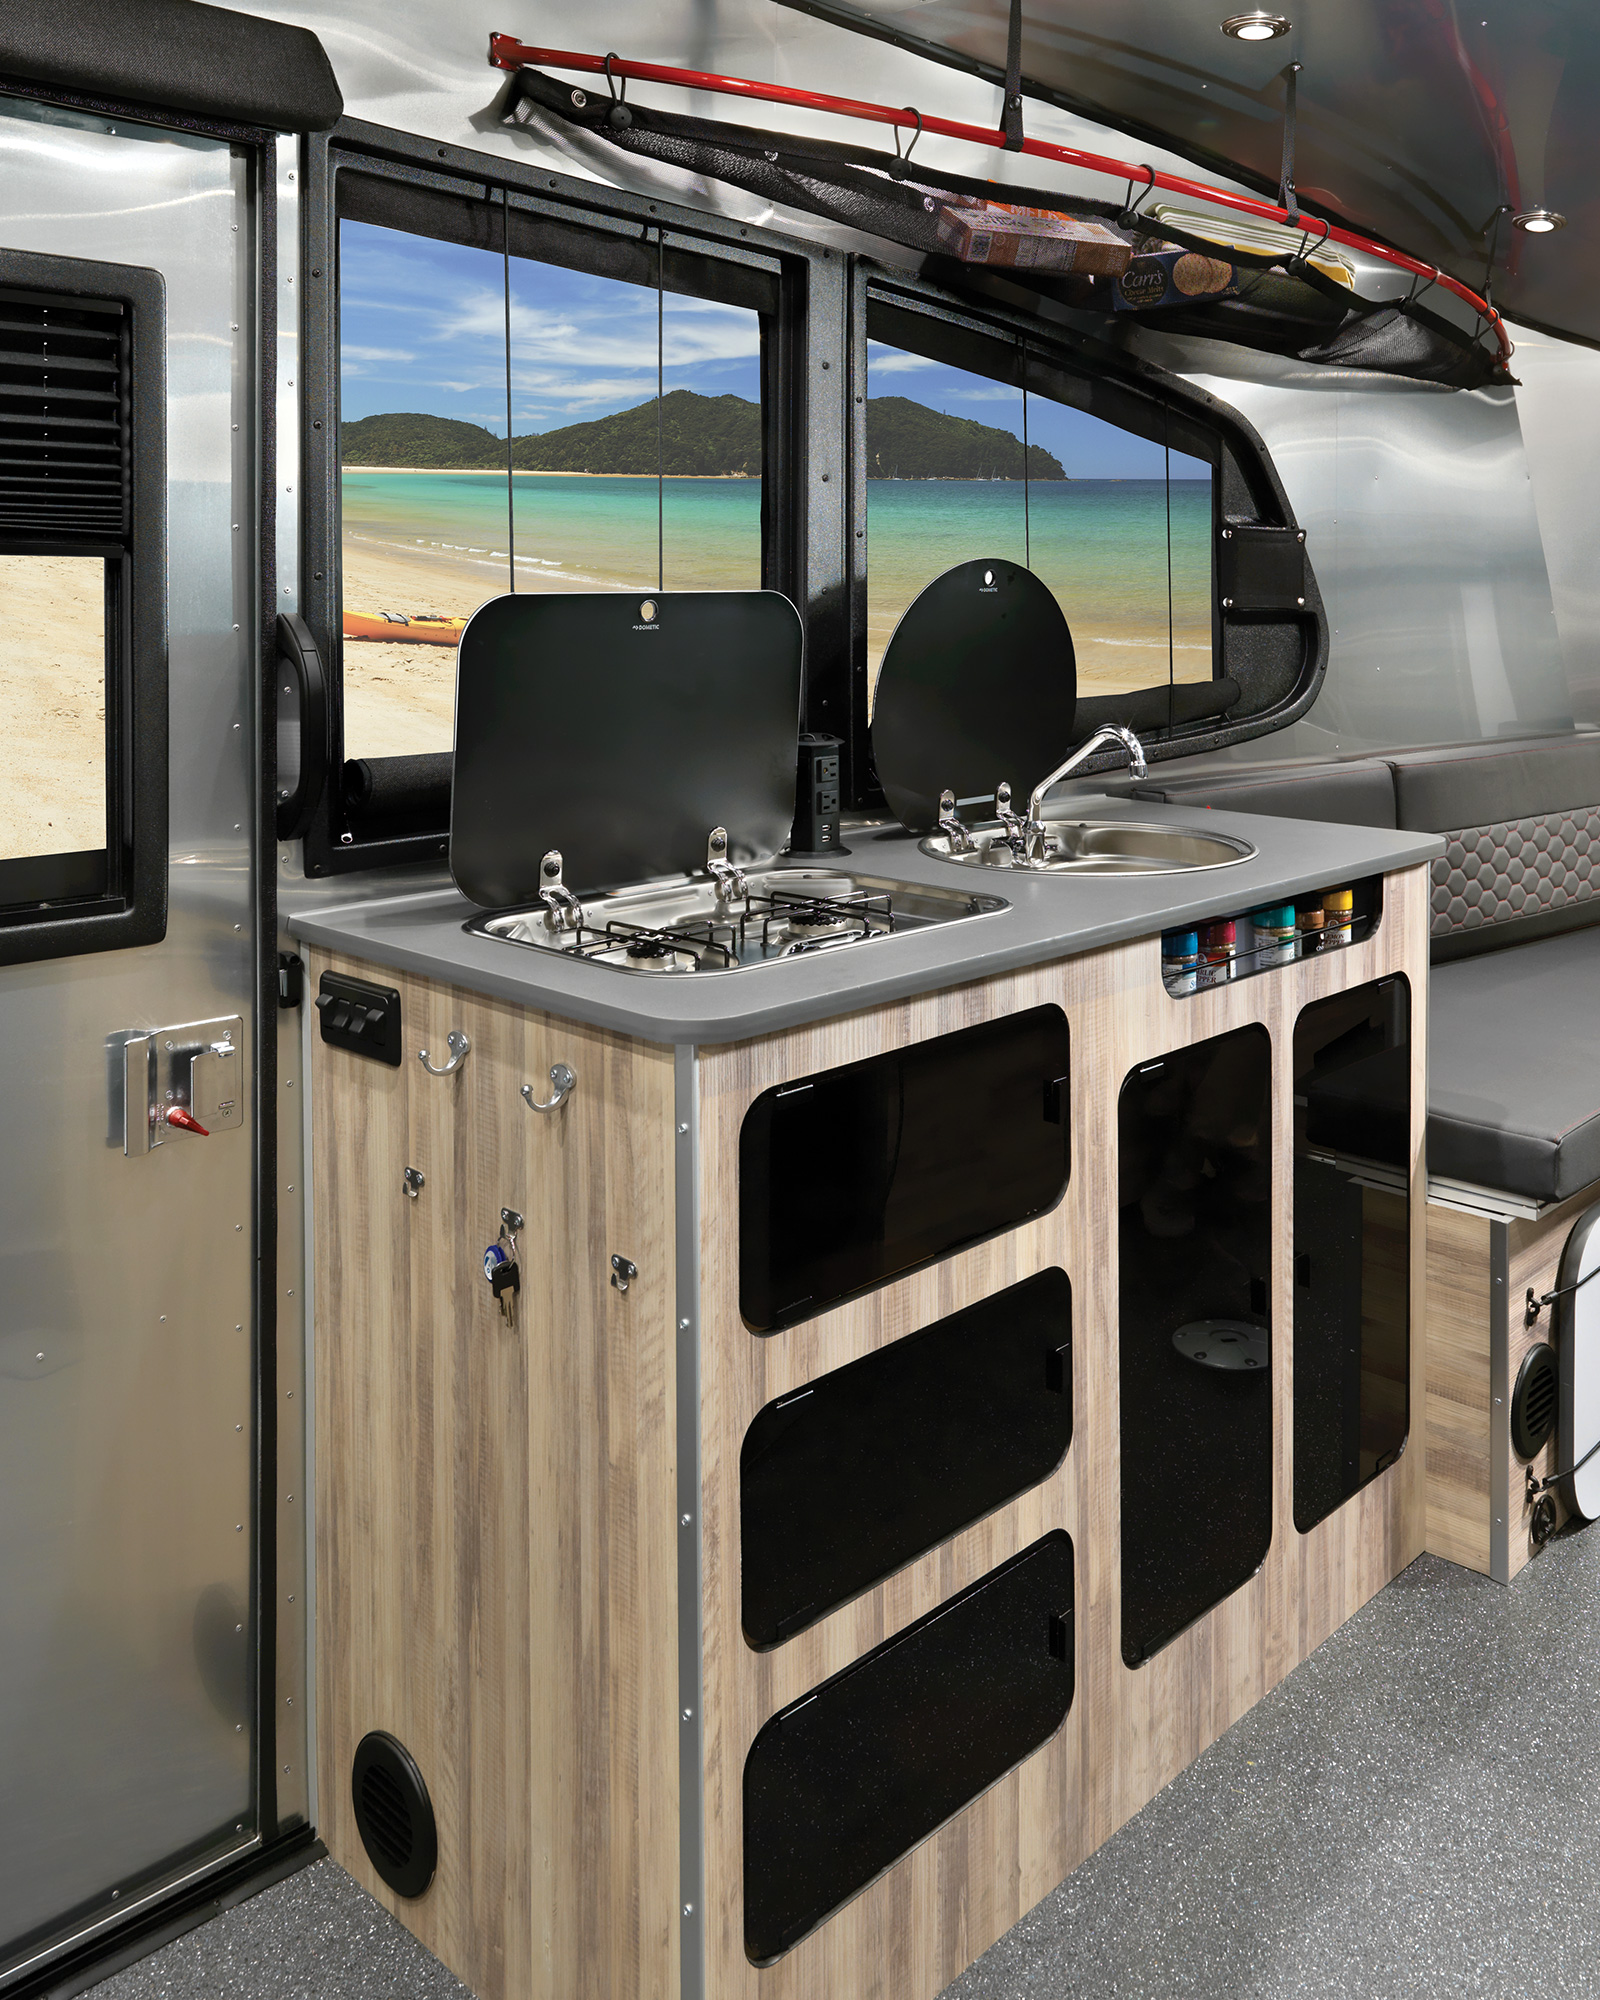 Airstream-Basecamp-20-Kitchen-Galley-Space